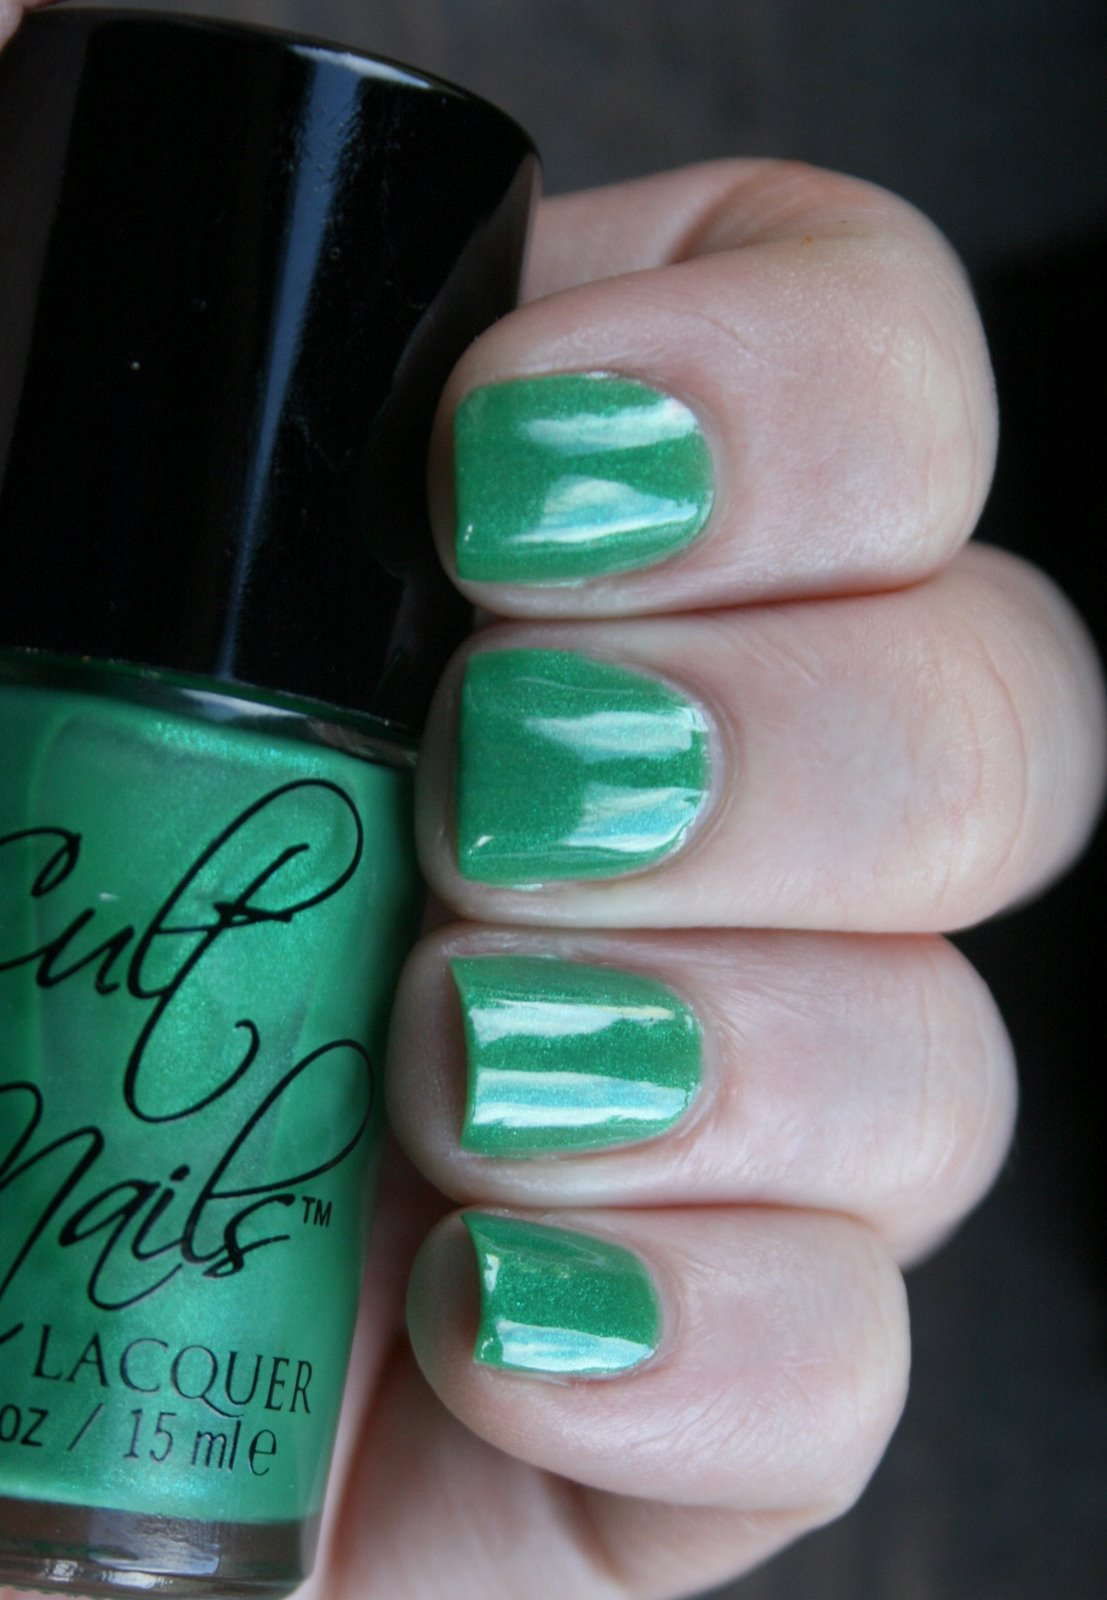 Cult Nails Feelin' Froggy Swatch